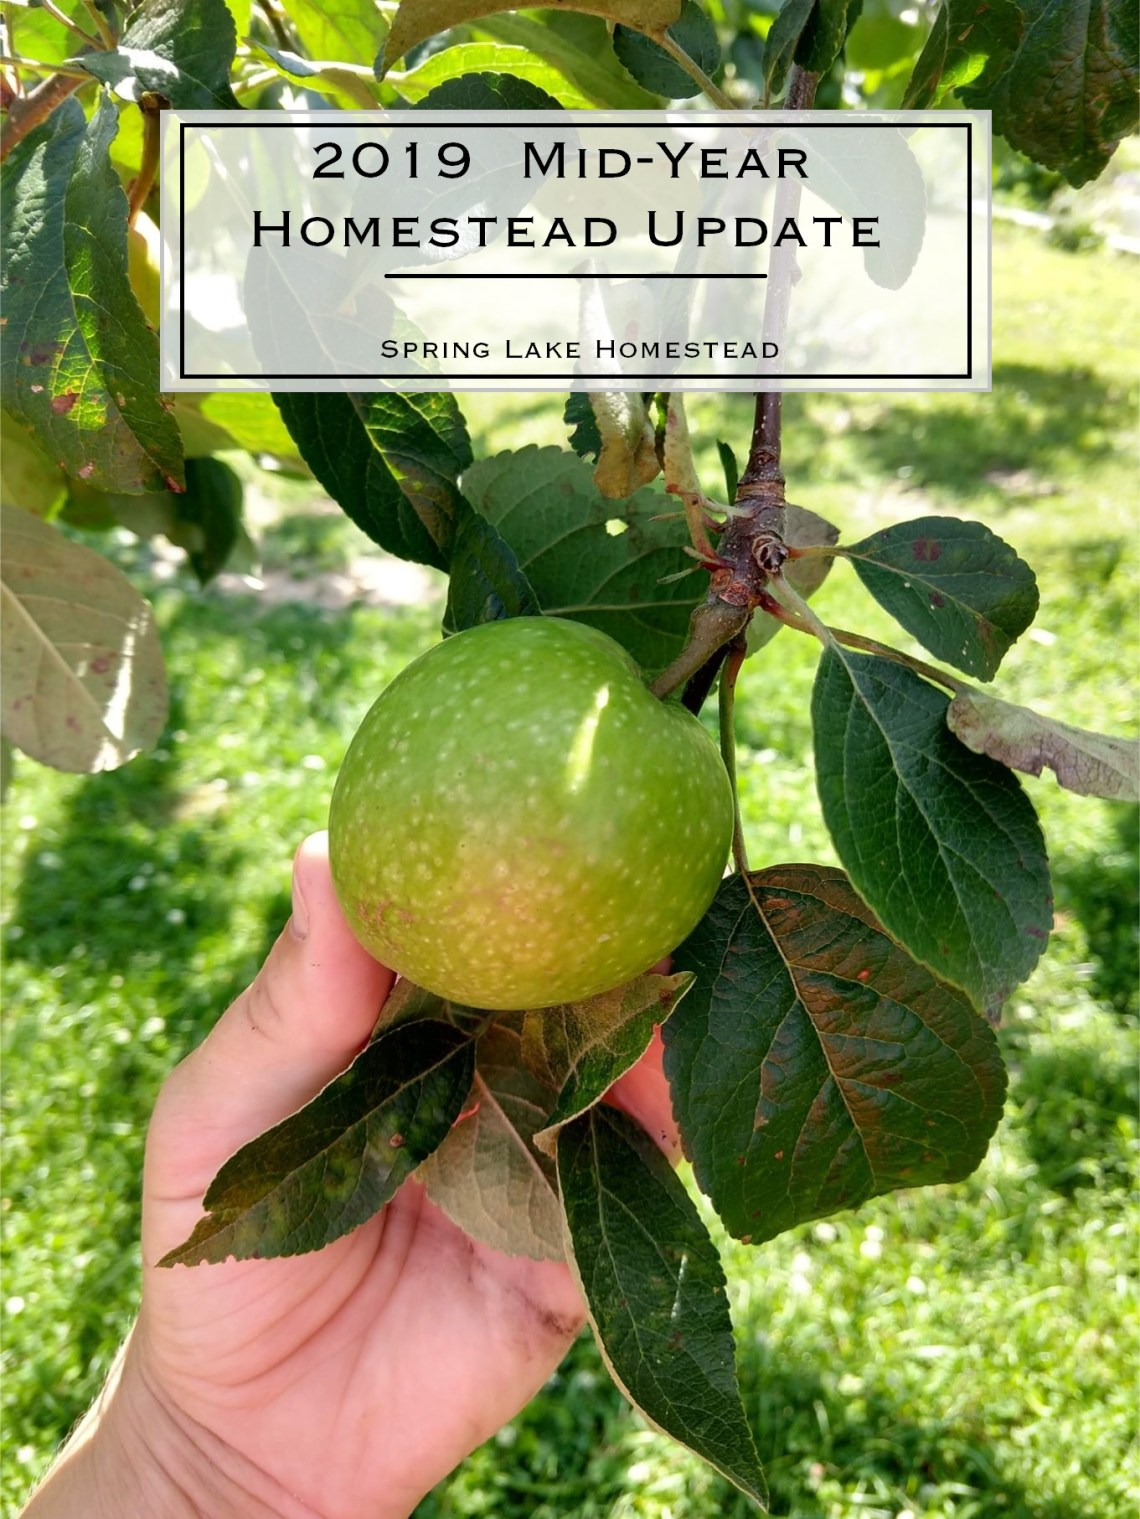 2019 Mid-year homestead update